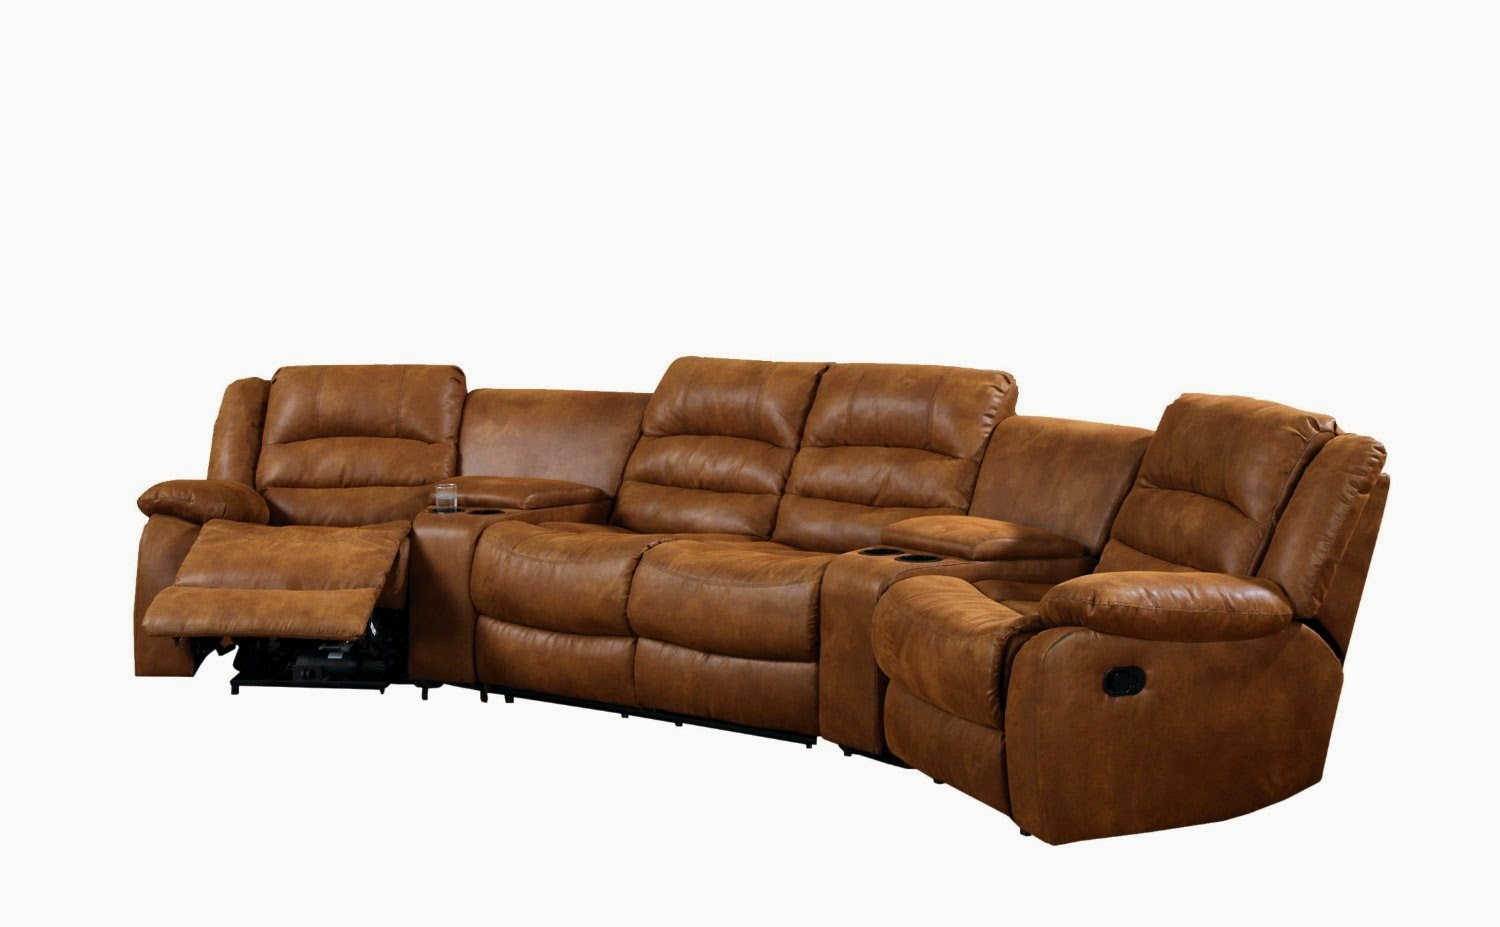 Sectional Sofas And Recliners Sofa World Ottawa Canada Curved Furniture Reviews Leather Recliner